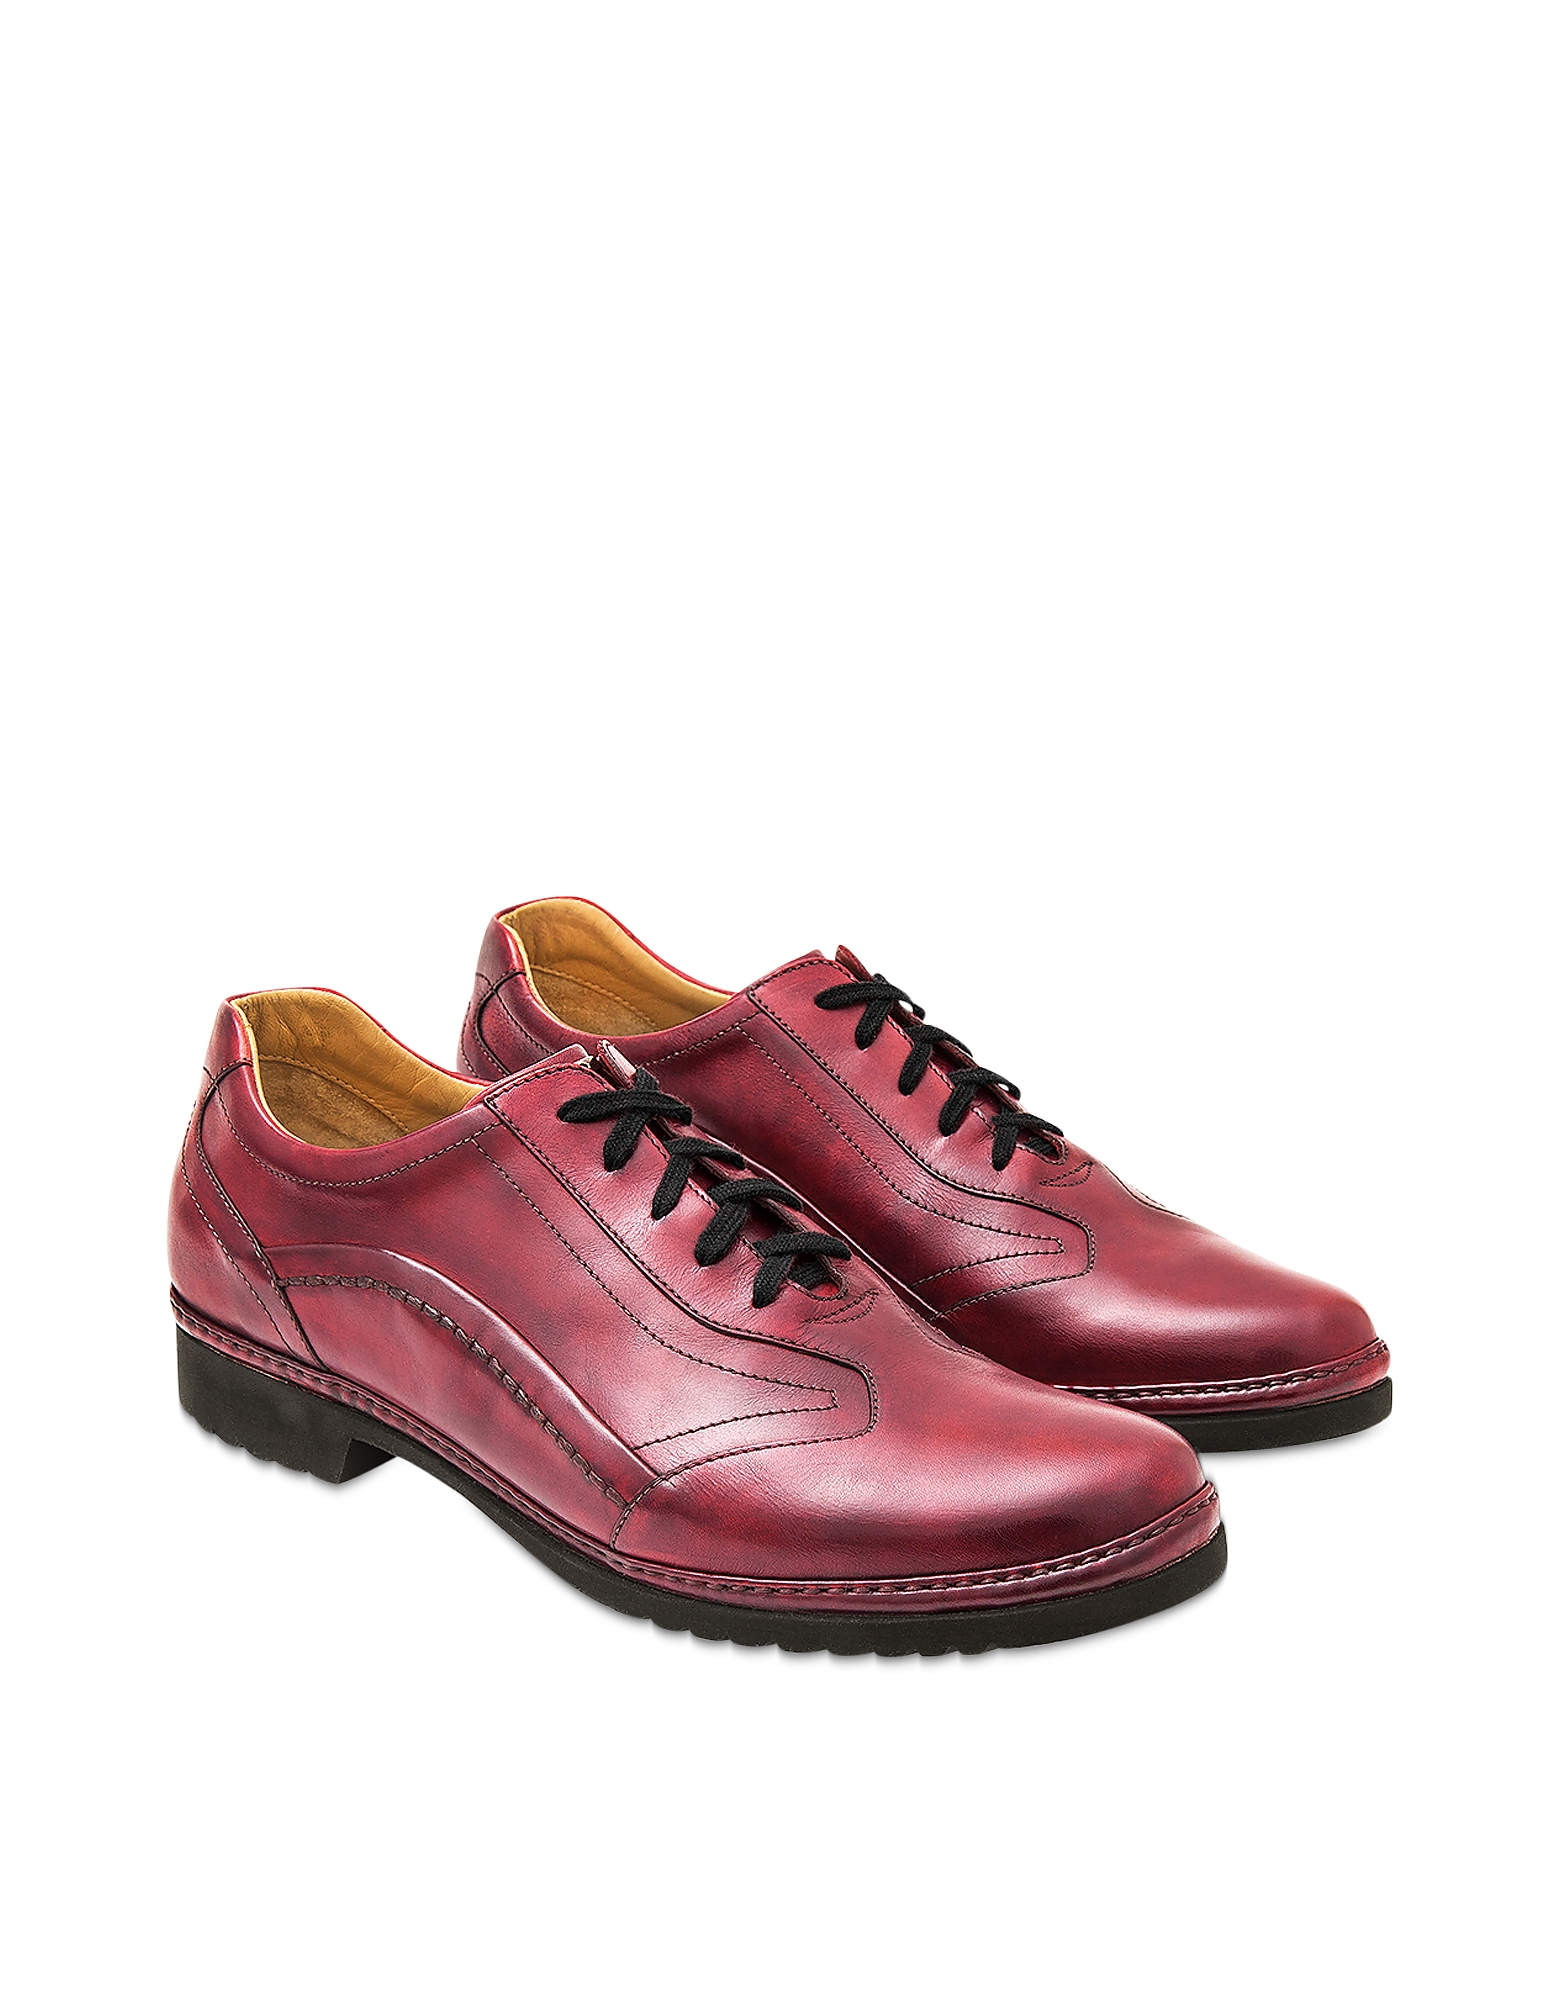 Pakerson Designer Shoes, Burgundy Pienza Derby Shoe